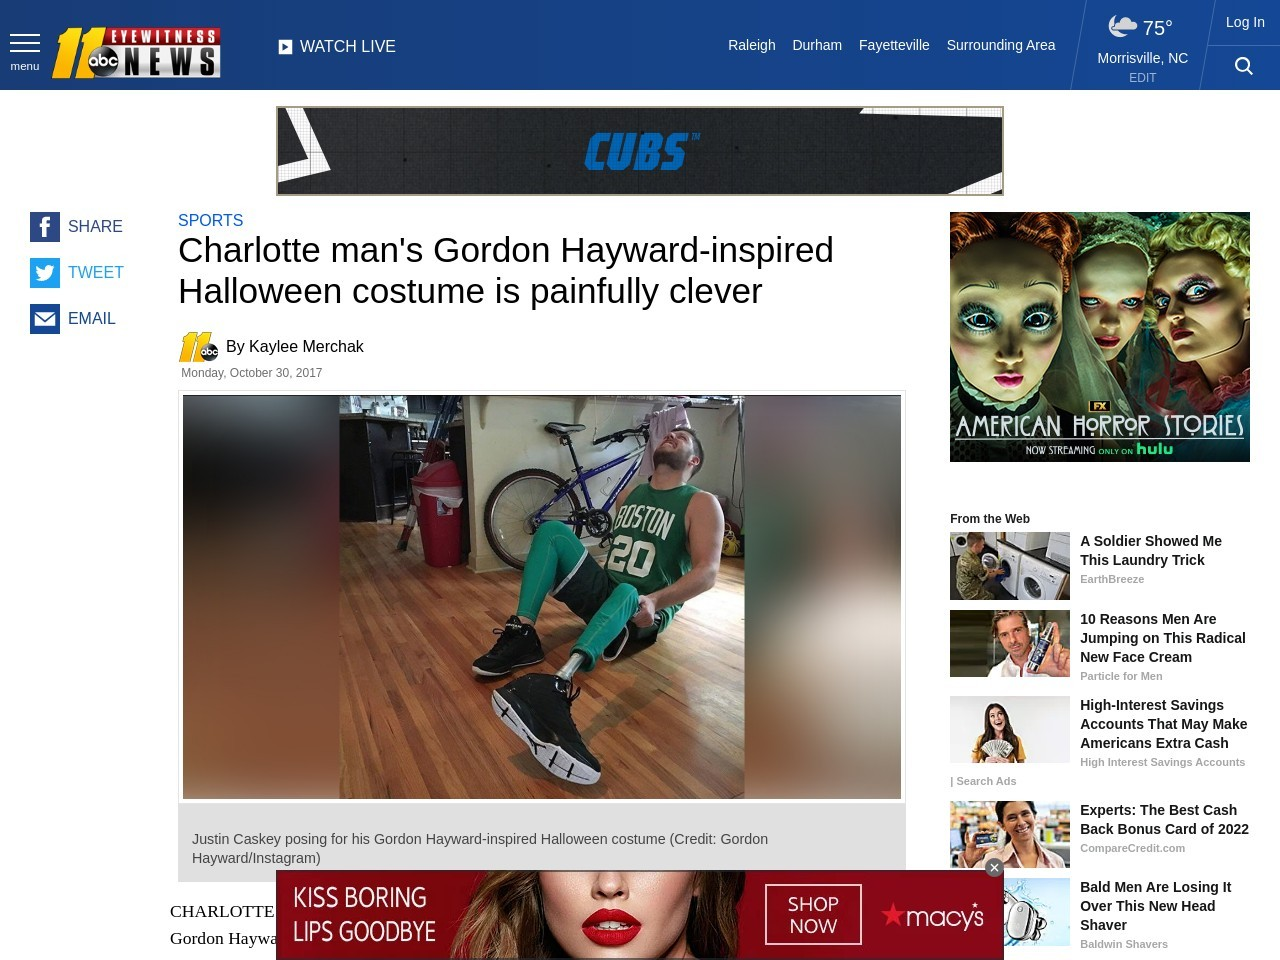 Charlotte man's Gordon Hayward-inspired Halloween costume is painfully clever